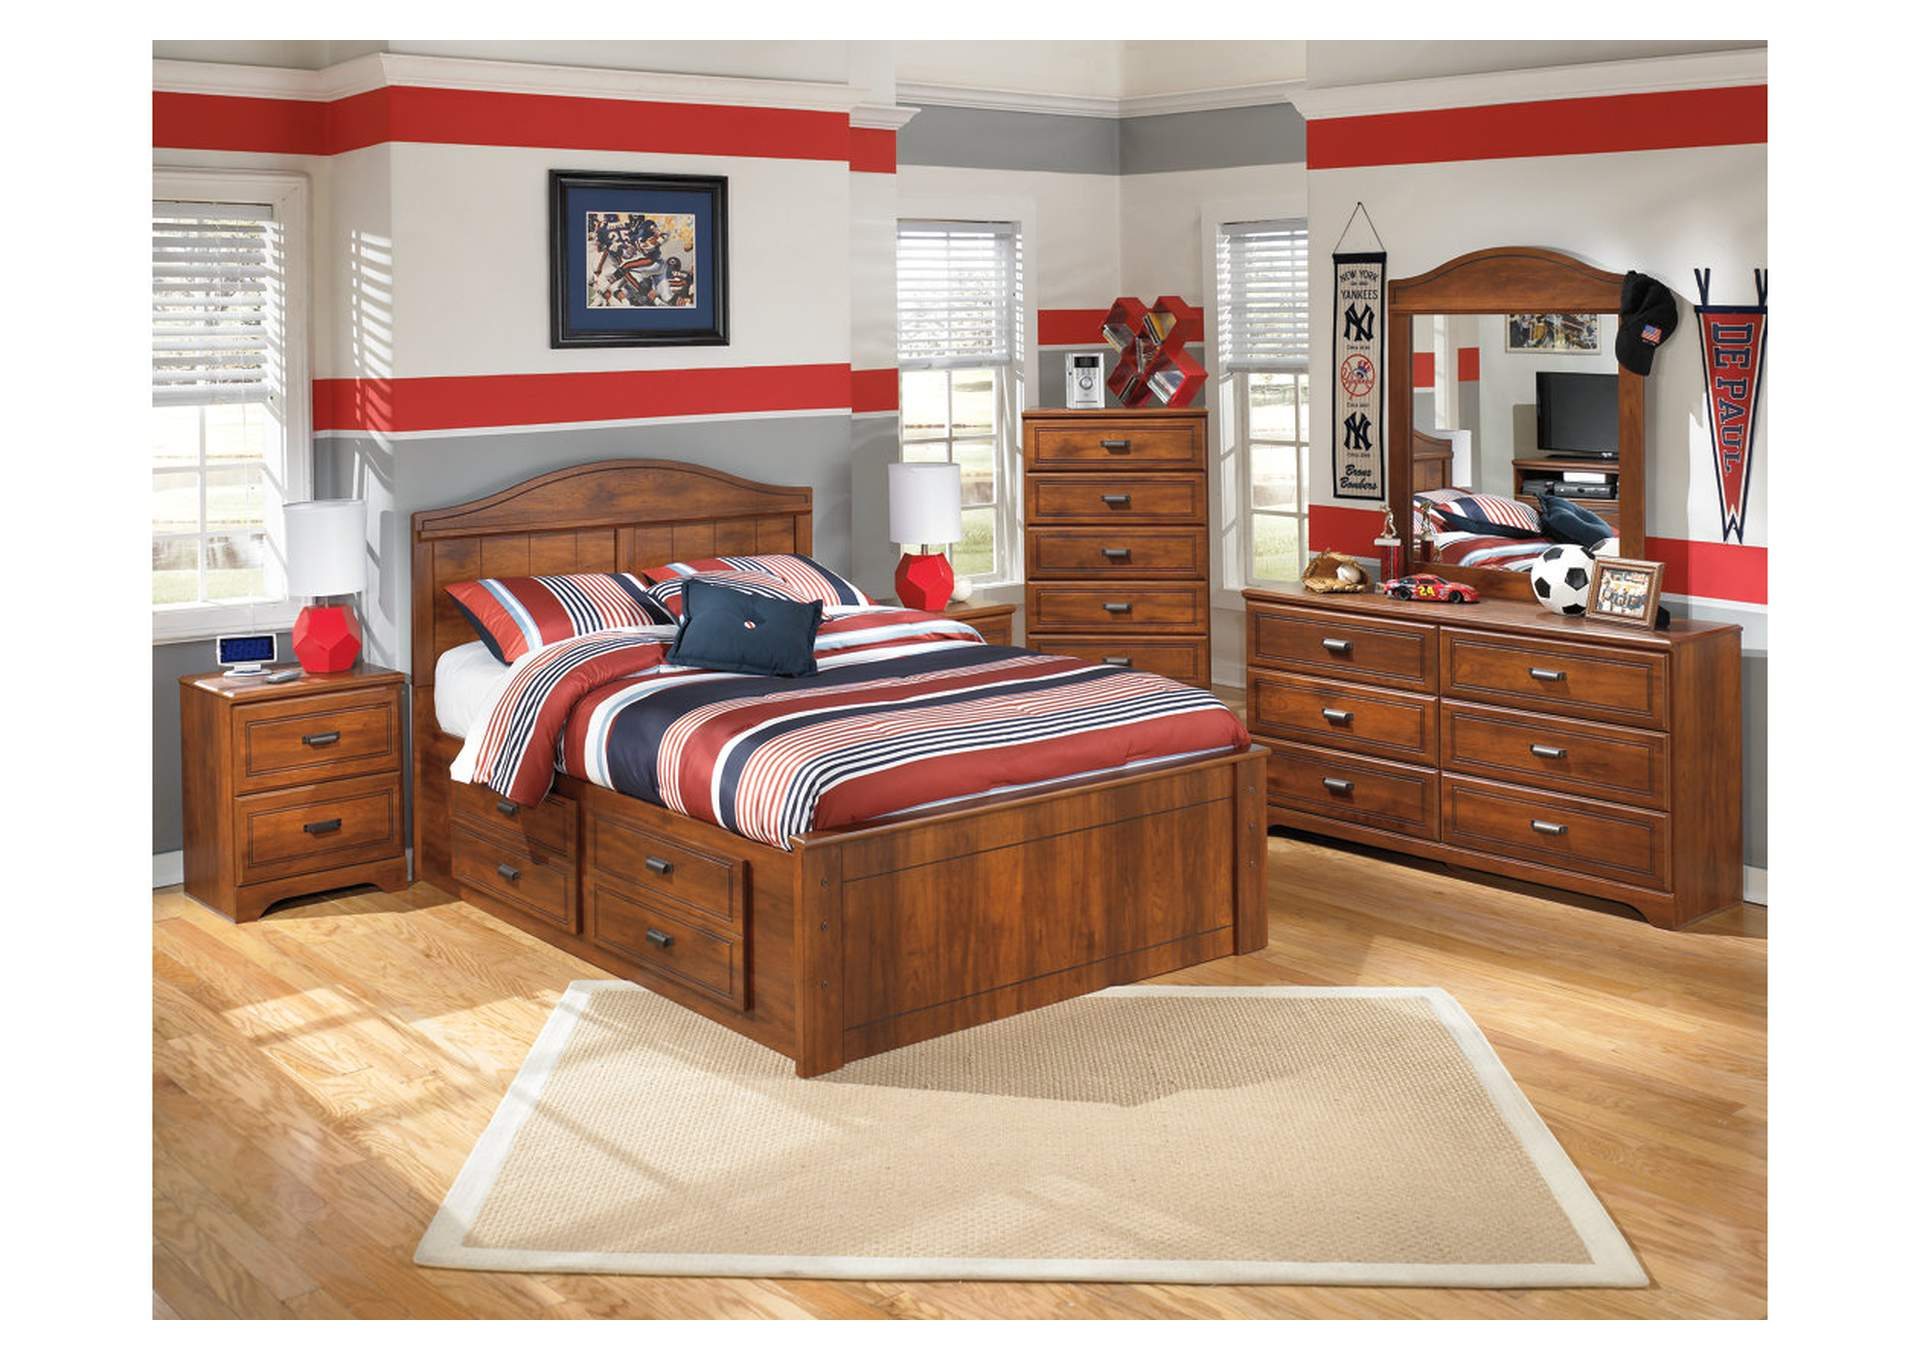 Barchan Full Panel Storage Bed w/Dresser, Mirror & Drawer Chest,Signature Design By Ashley